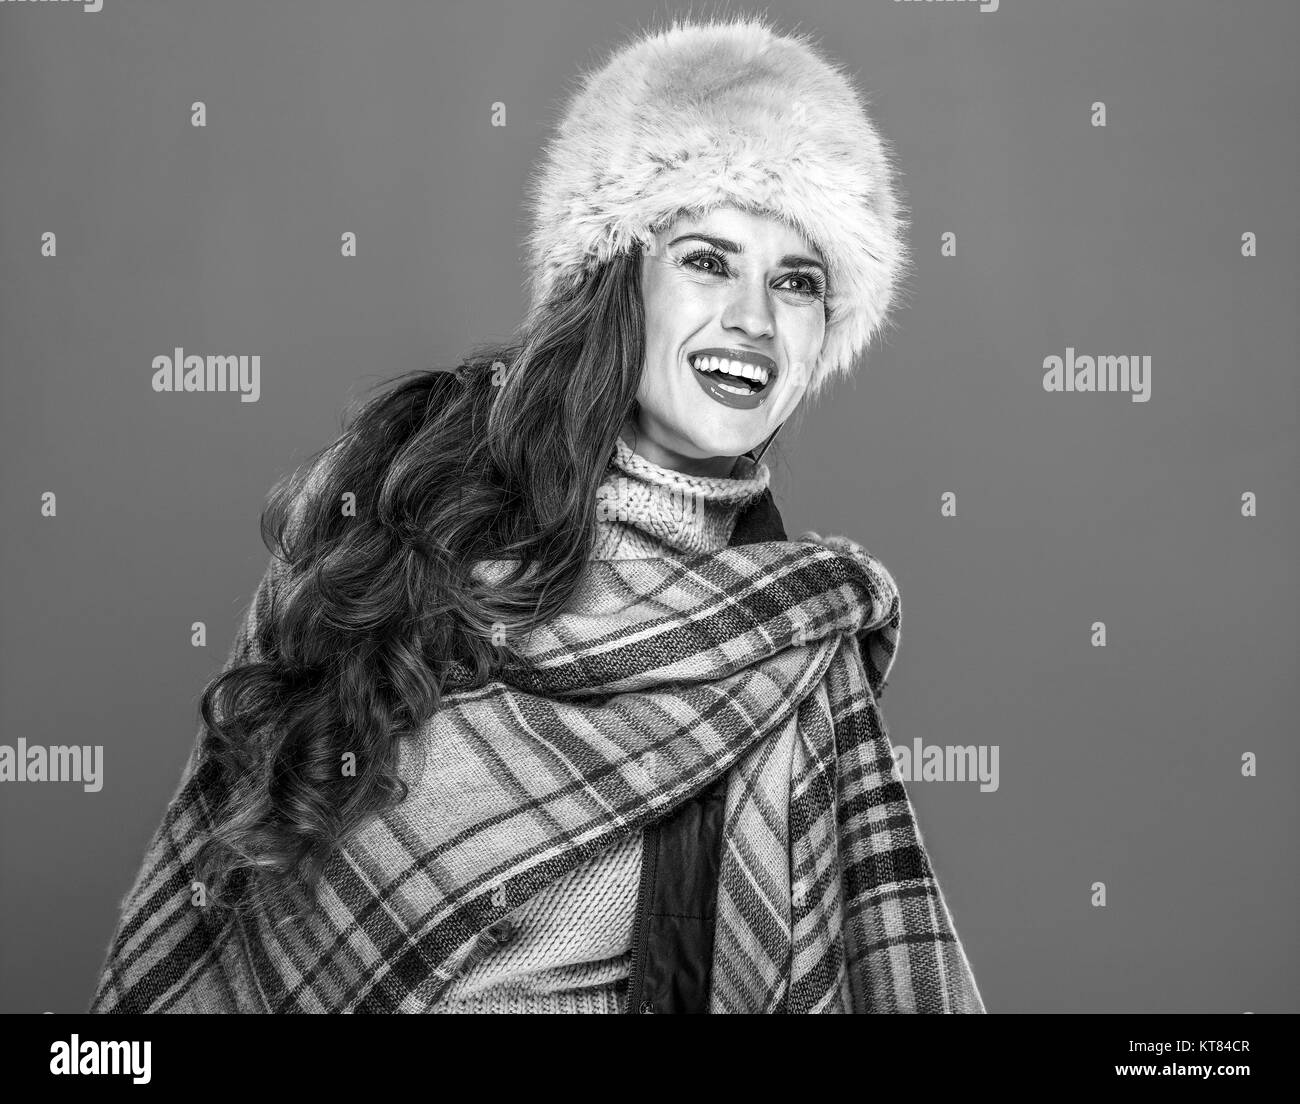 Winter things. Portrait of happy young woman in fur hat isolated on cold blue background looking on copy space - Stock Image